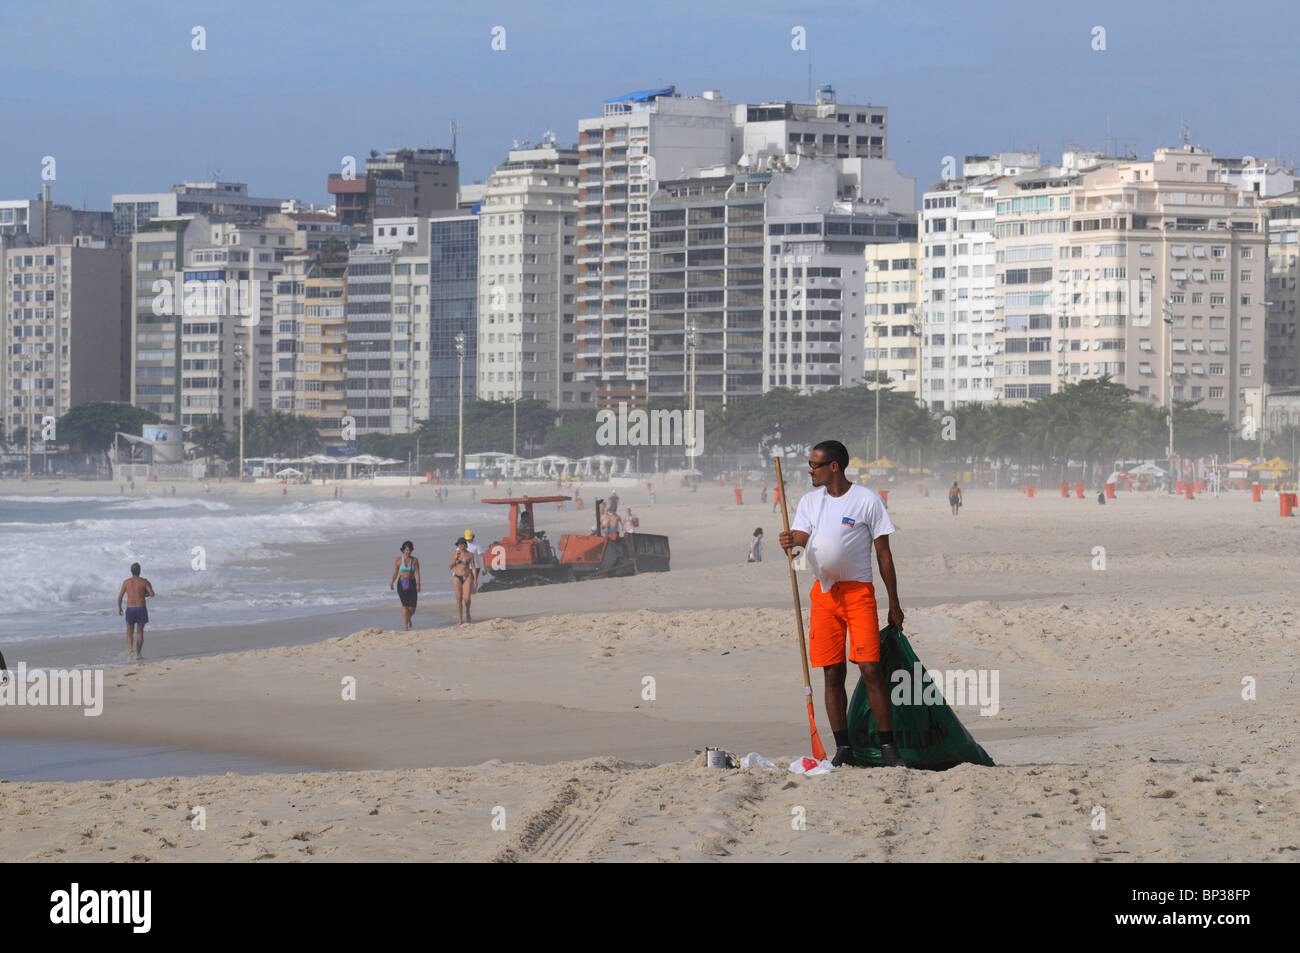 A worker cleaning up the famous beach of Copacabana in Rio de Janeiro, Brazil - Stock Image